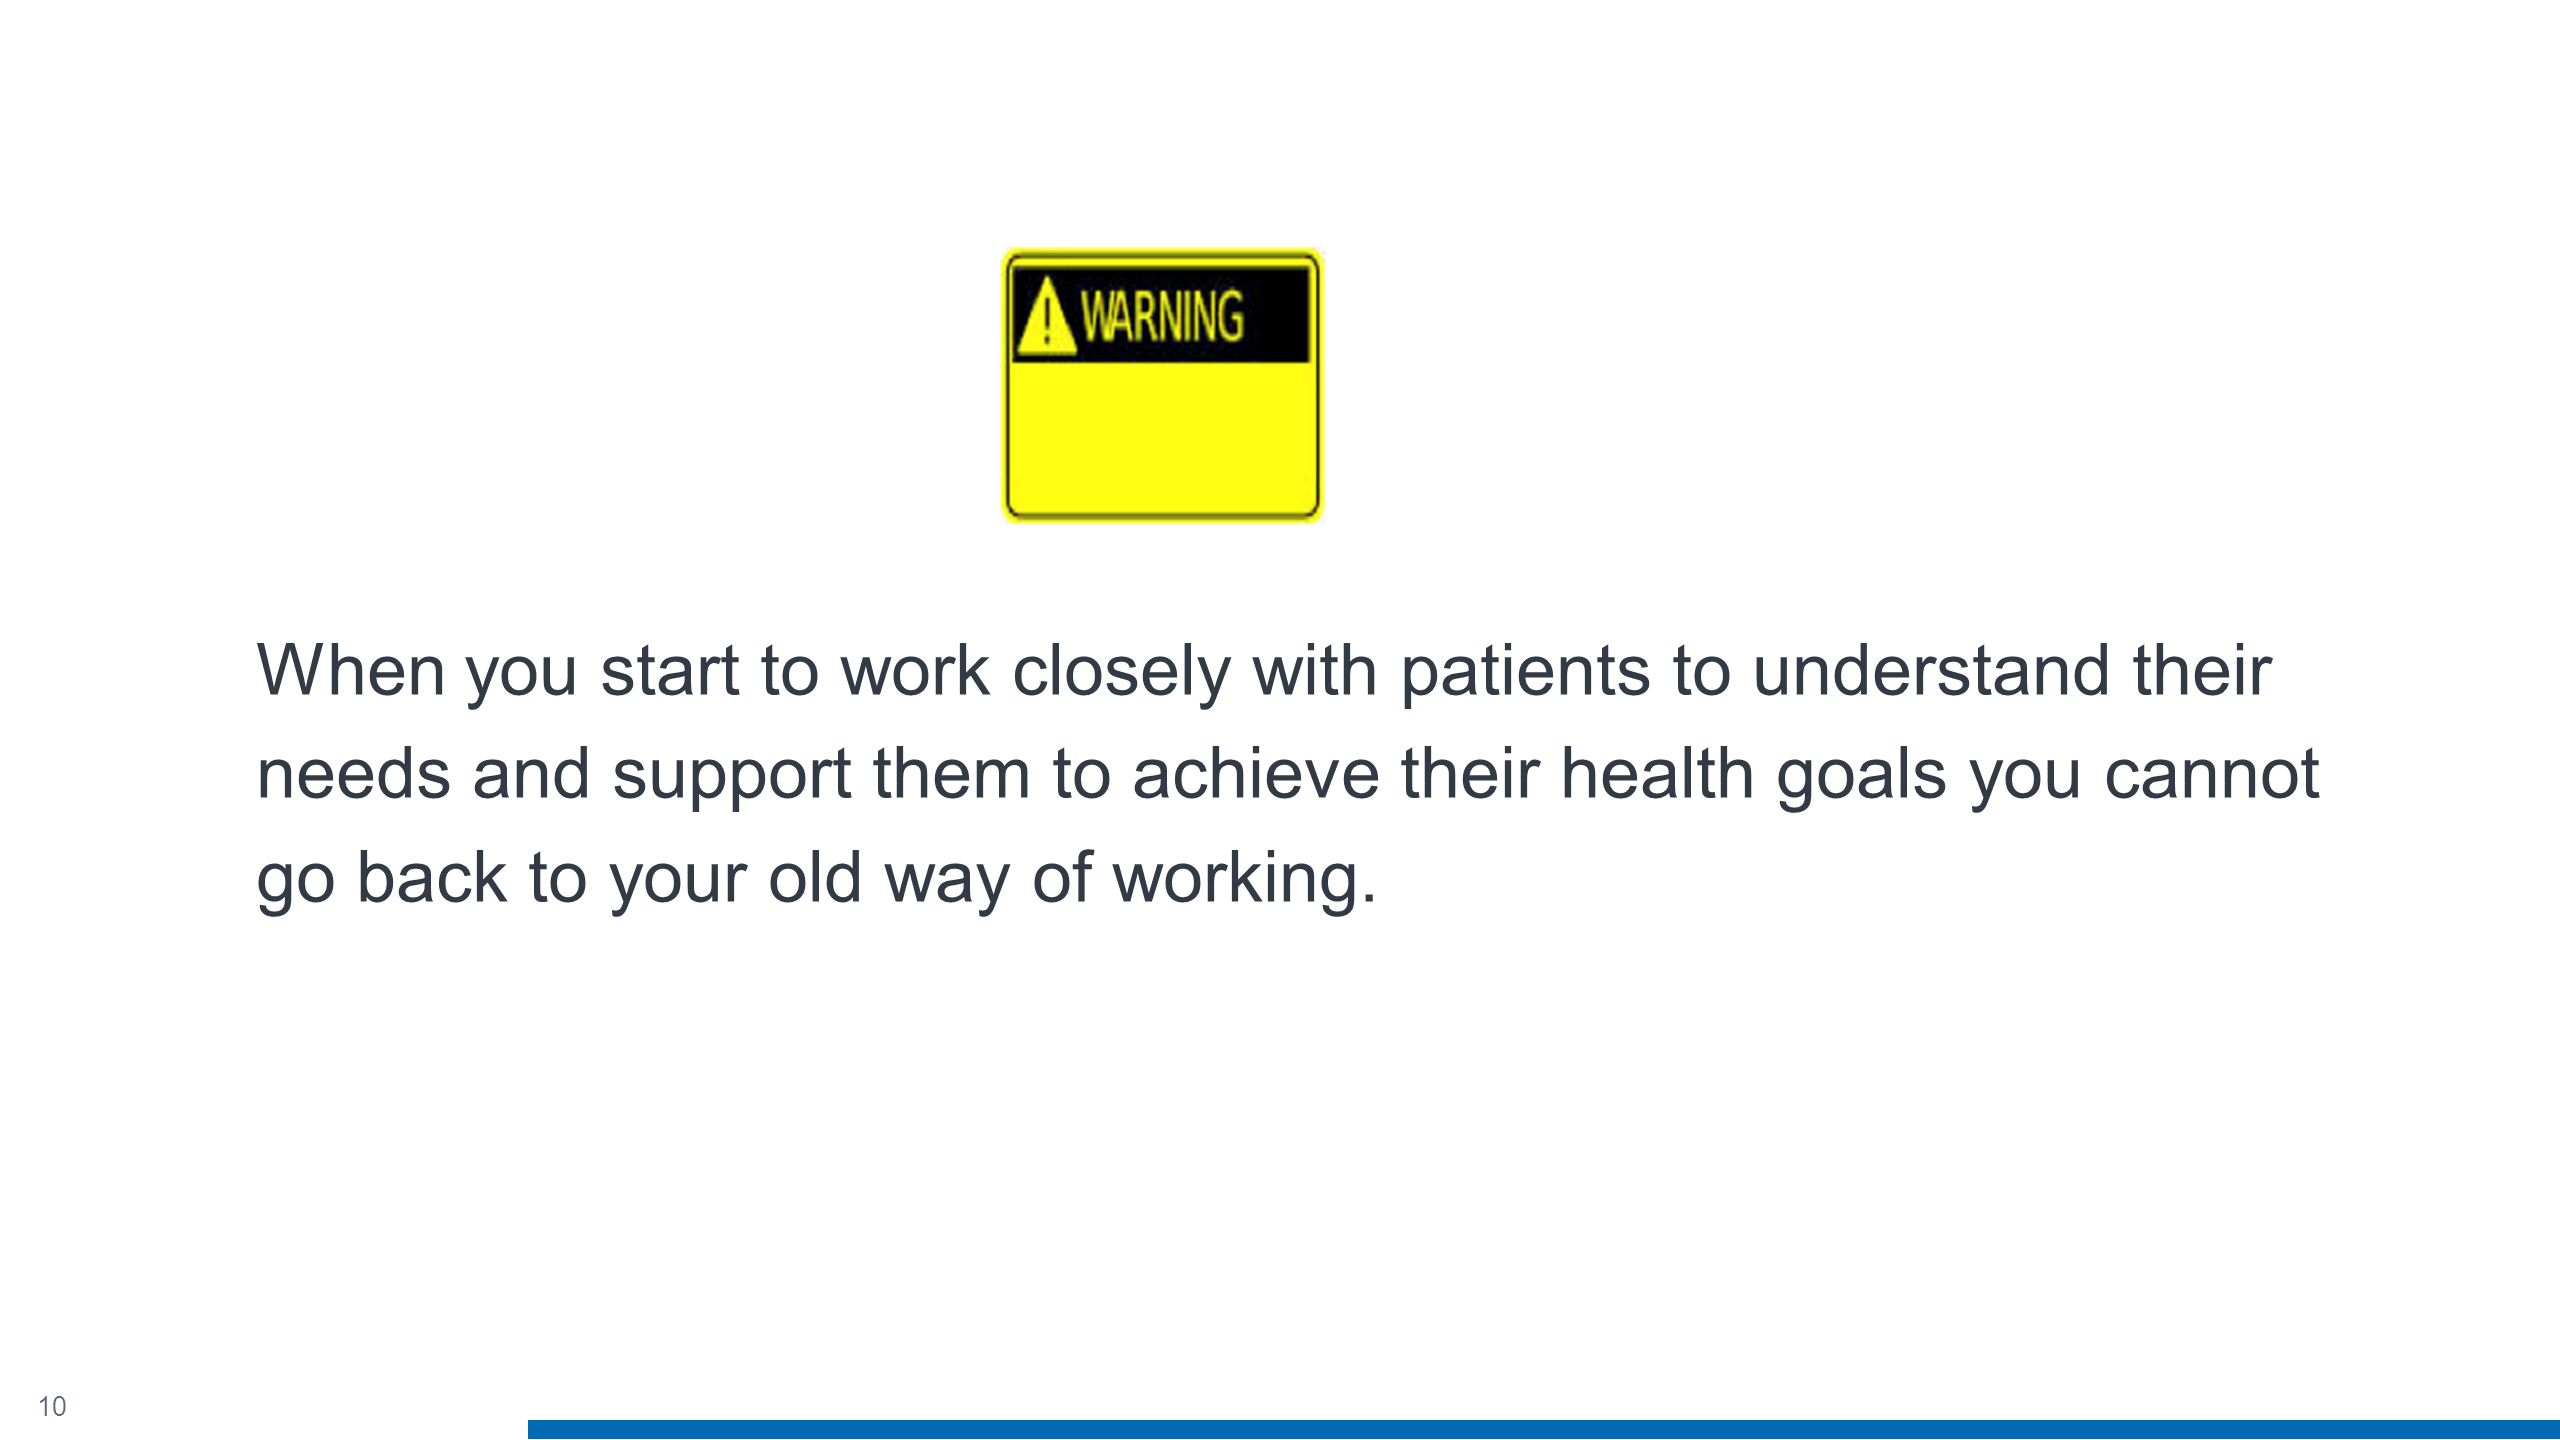 10 When you start to work closely with patients to understand their needs and support them to achieve their health goals you cannot go back to your old way of working.